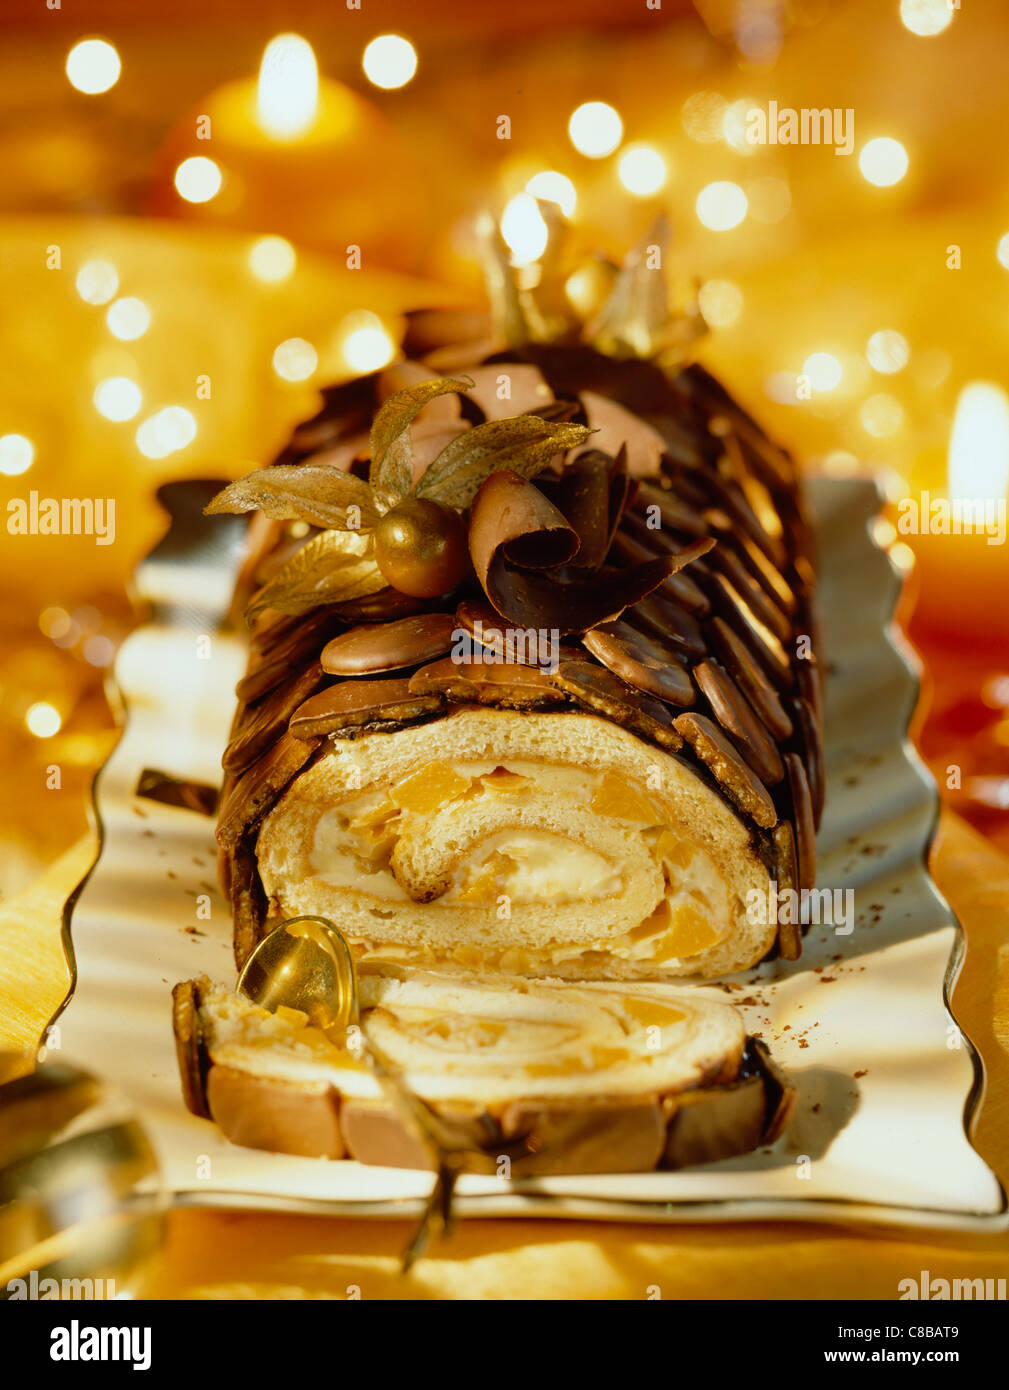 Crunchy chocolate-coated, orange and peach Yule log - Stock Image